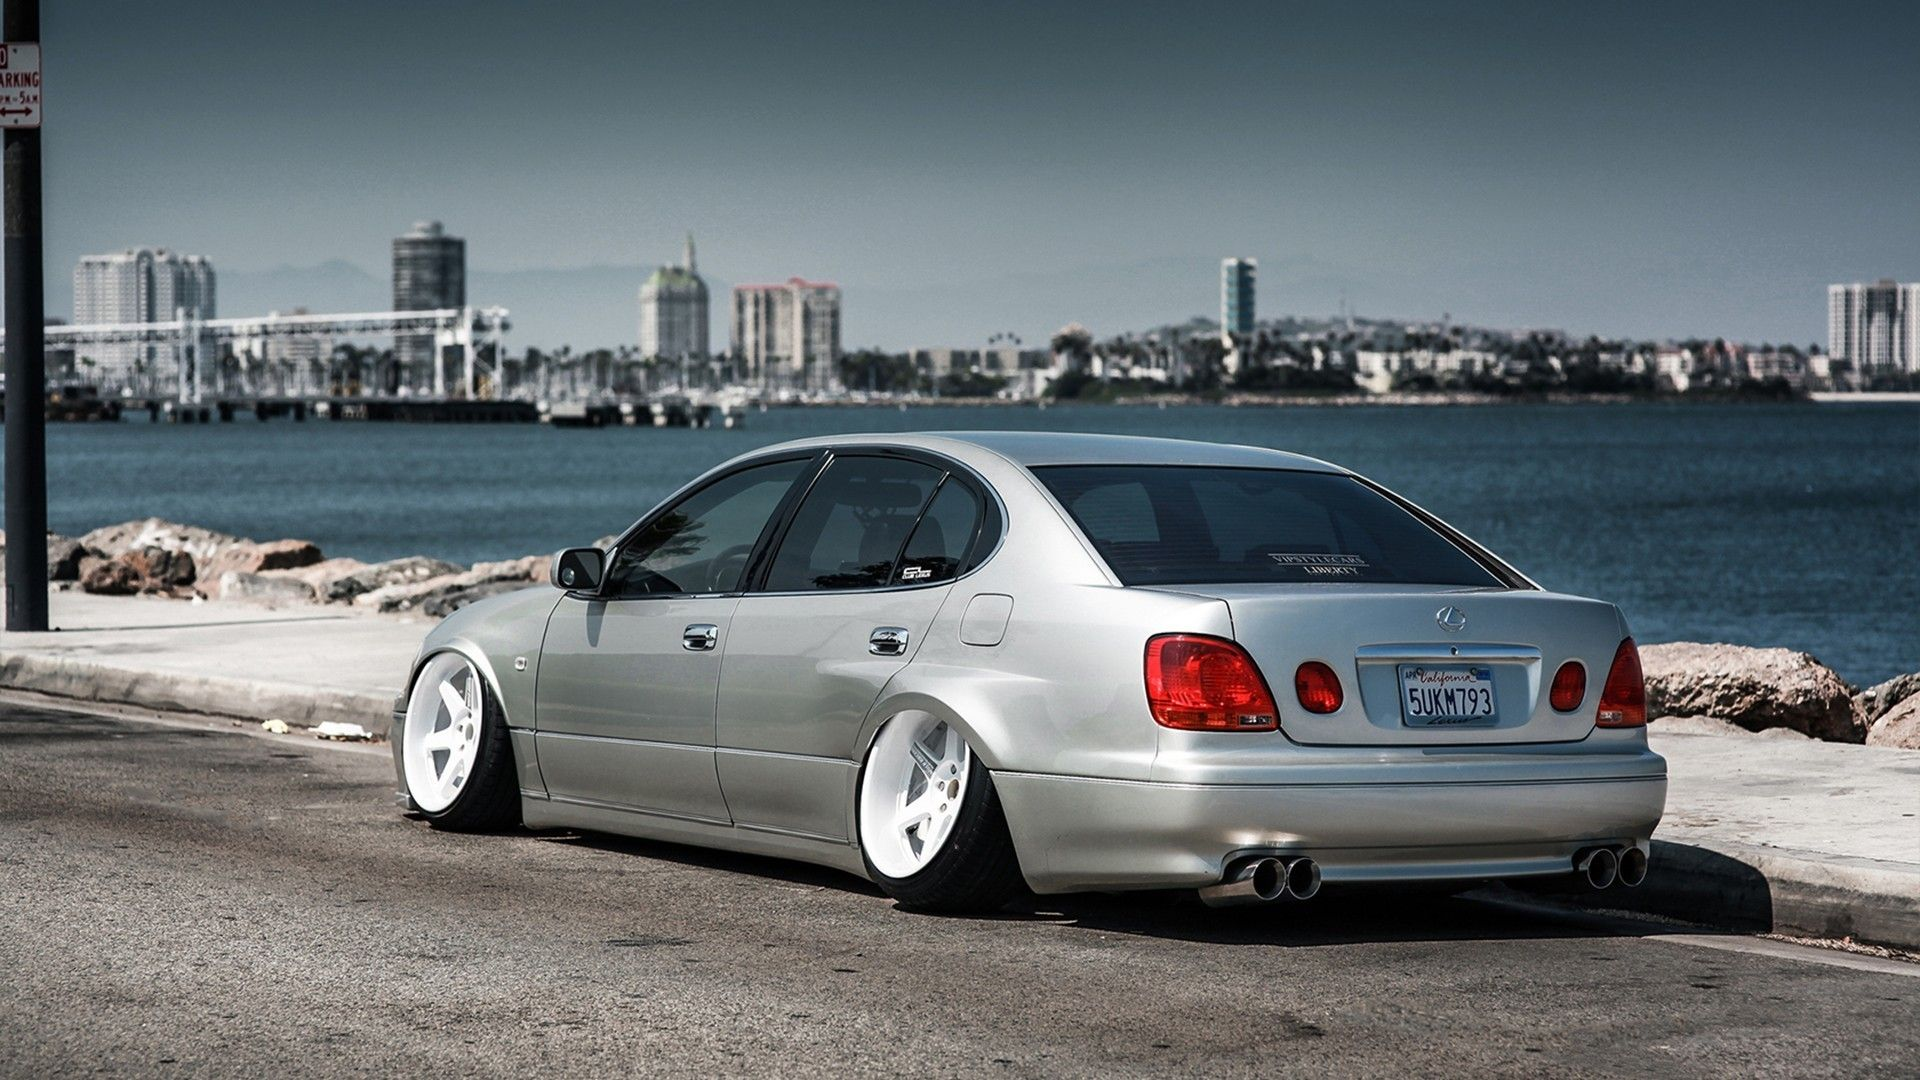 Lexus Gs Gs300 Slammed Cars Wallpaper